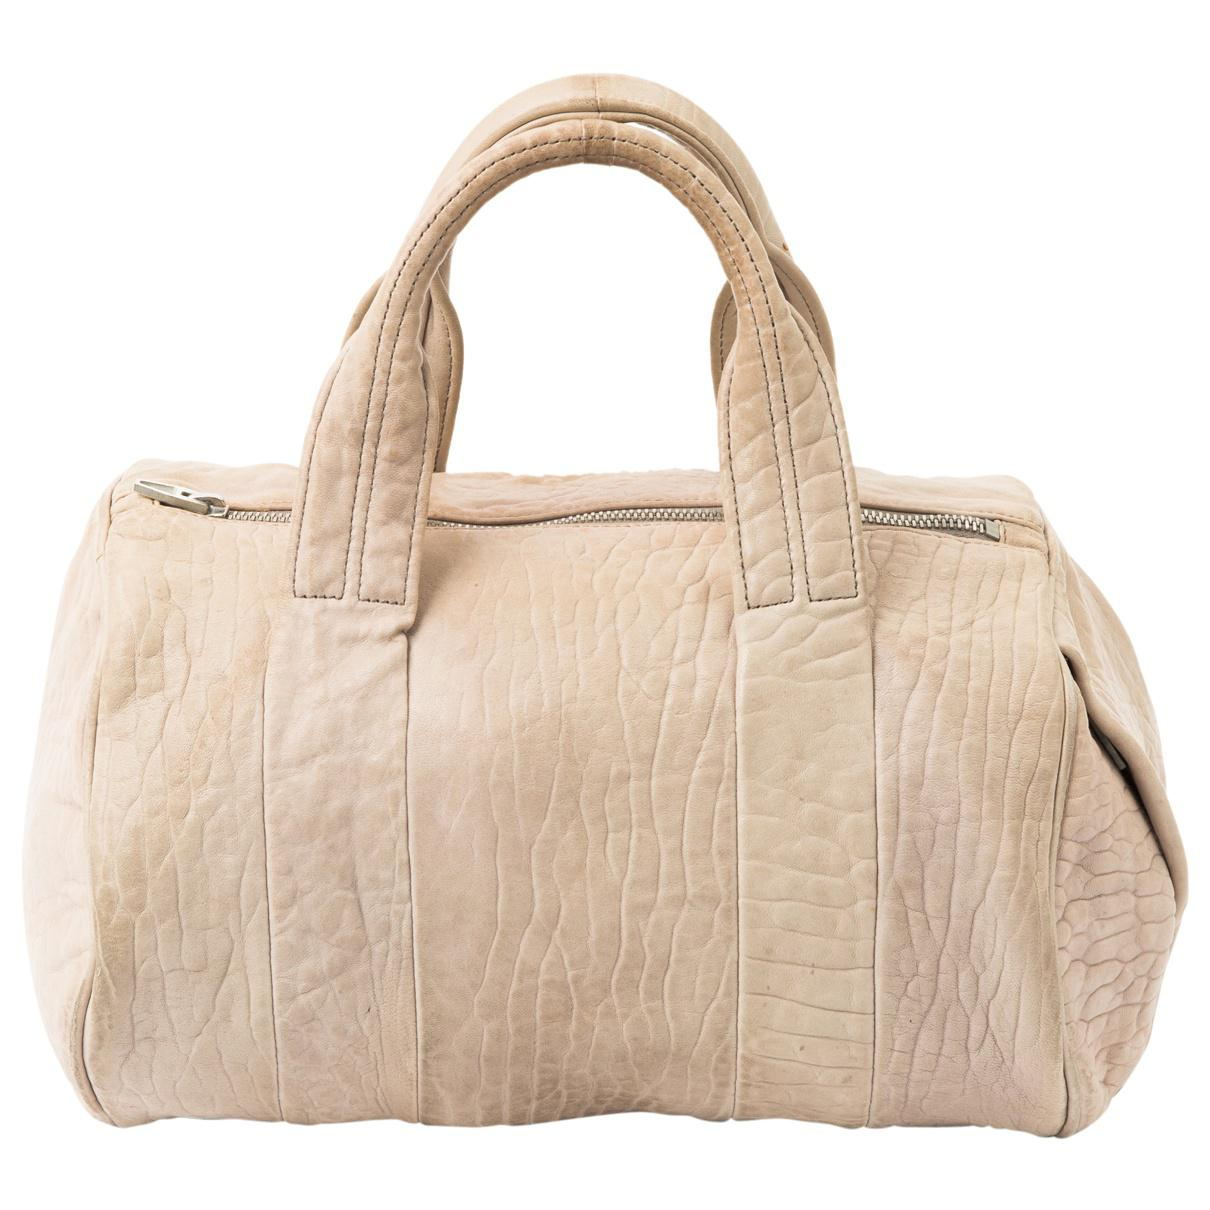 Pre-owned - Rocco leather bag Alexander Wang x6Ohnz